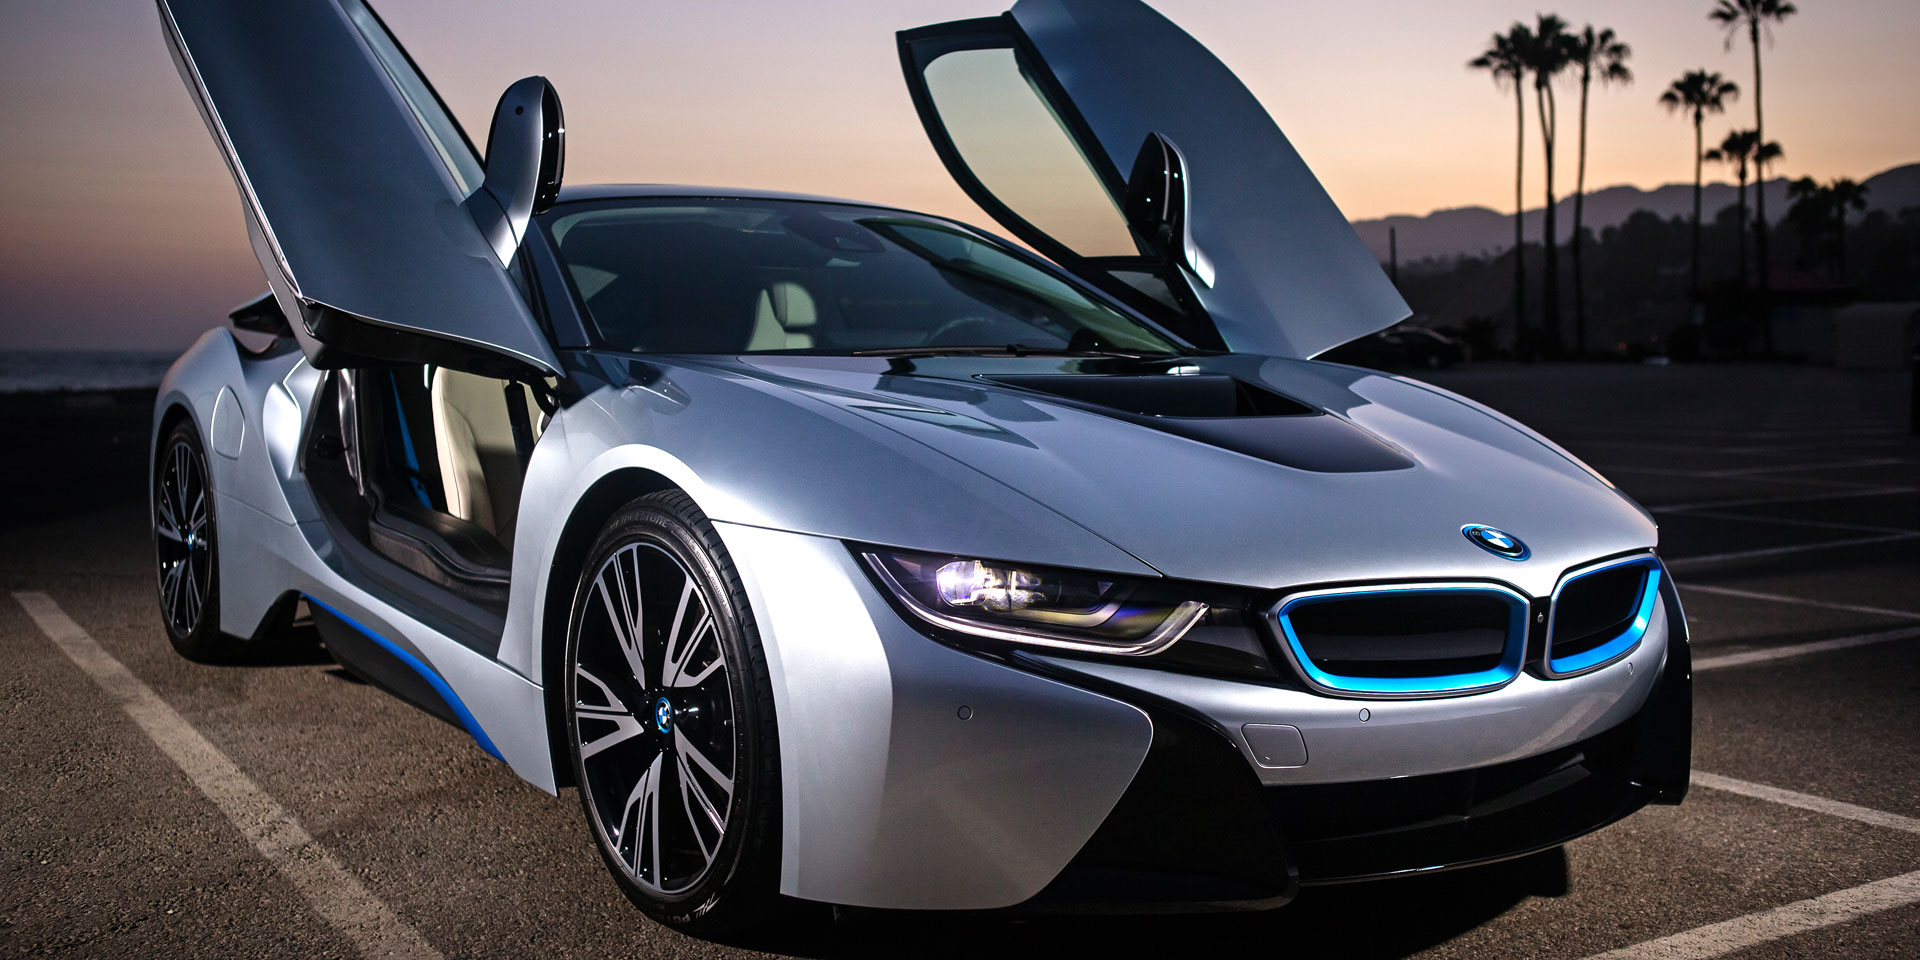 Used Cars For Sale New Cars For Sale Car Dealers Cars Chicago - 2015 bmw lineup